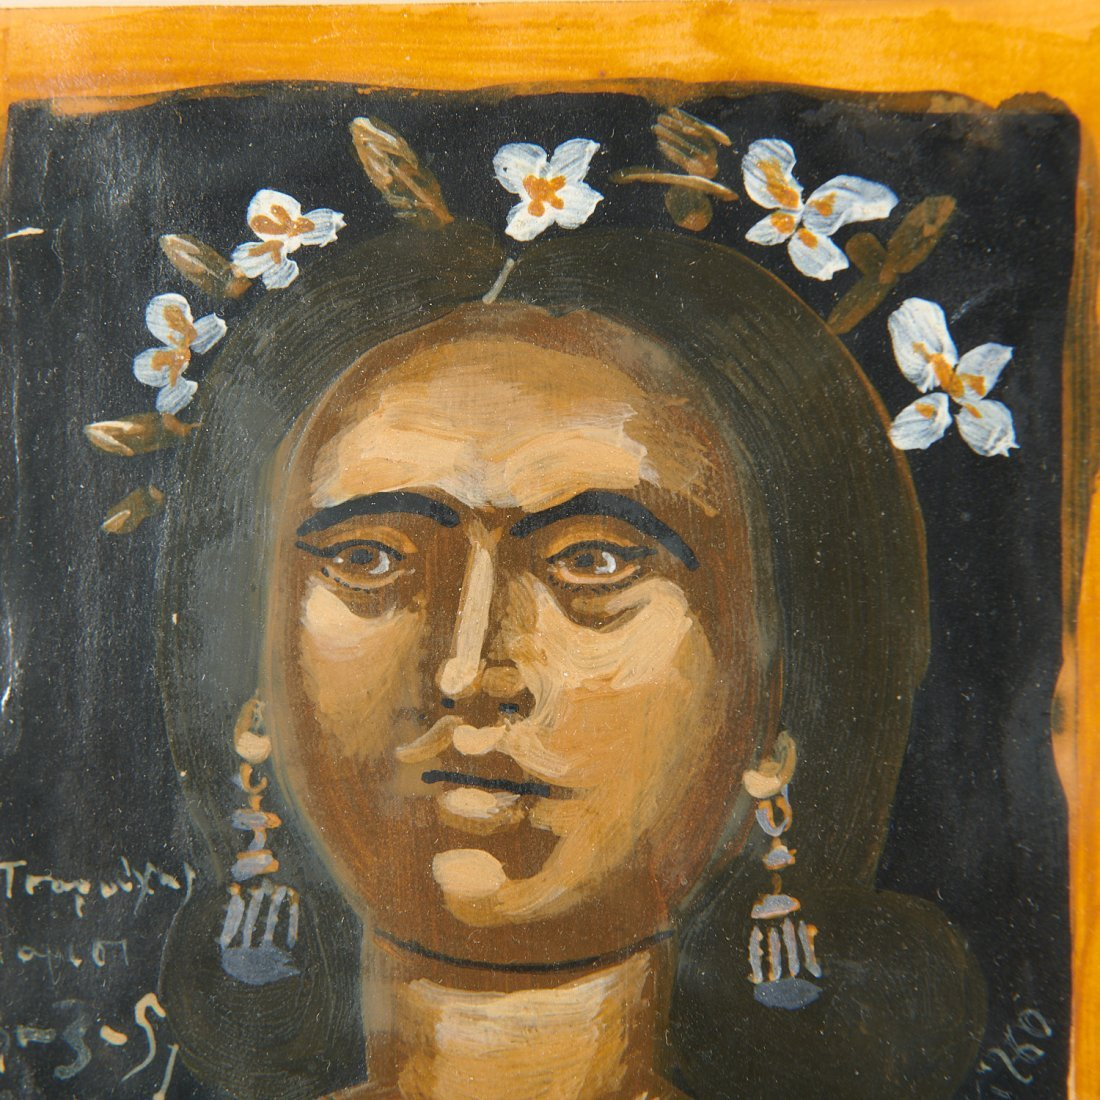 Yiannis Tsarouchis, Portrait of a woman, 1951 - 4